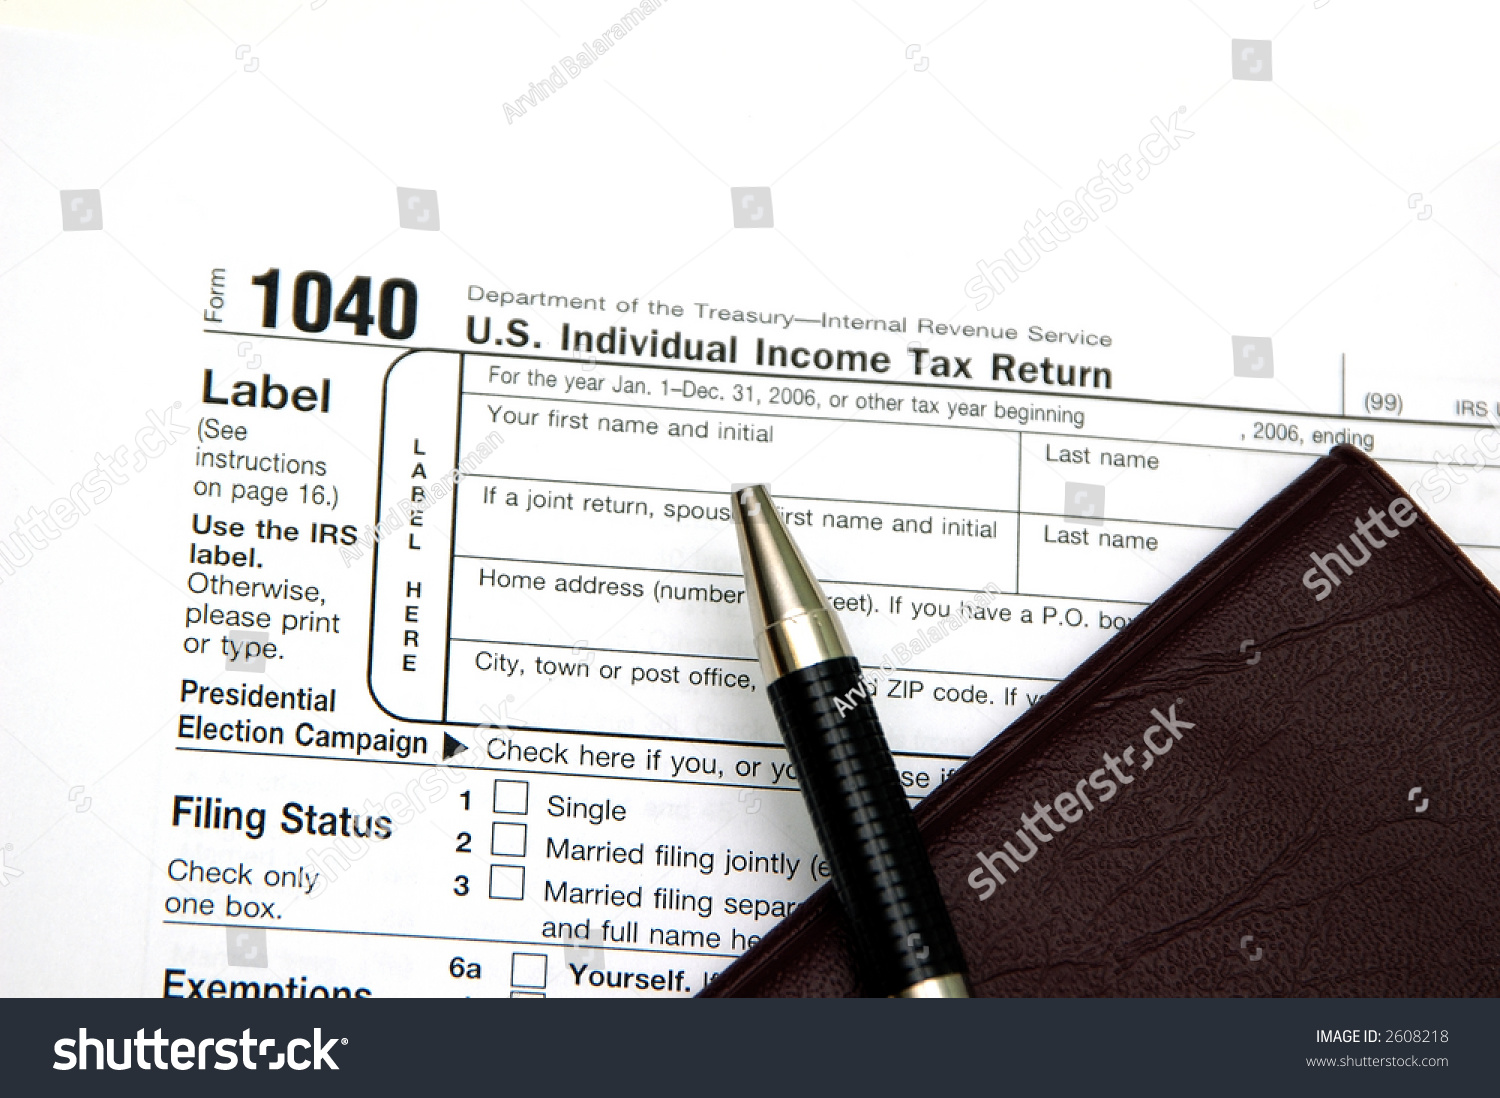 how to check tax return online